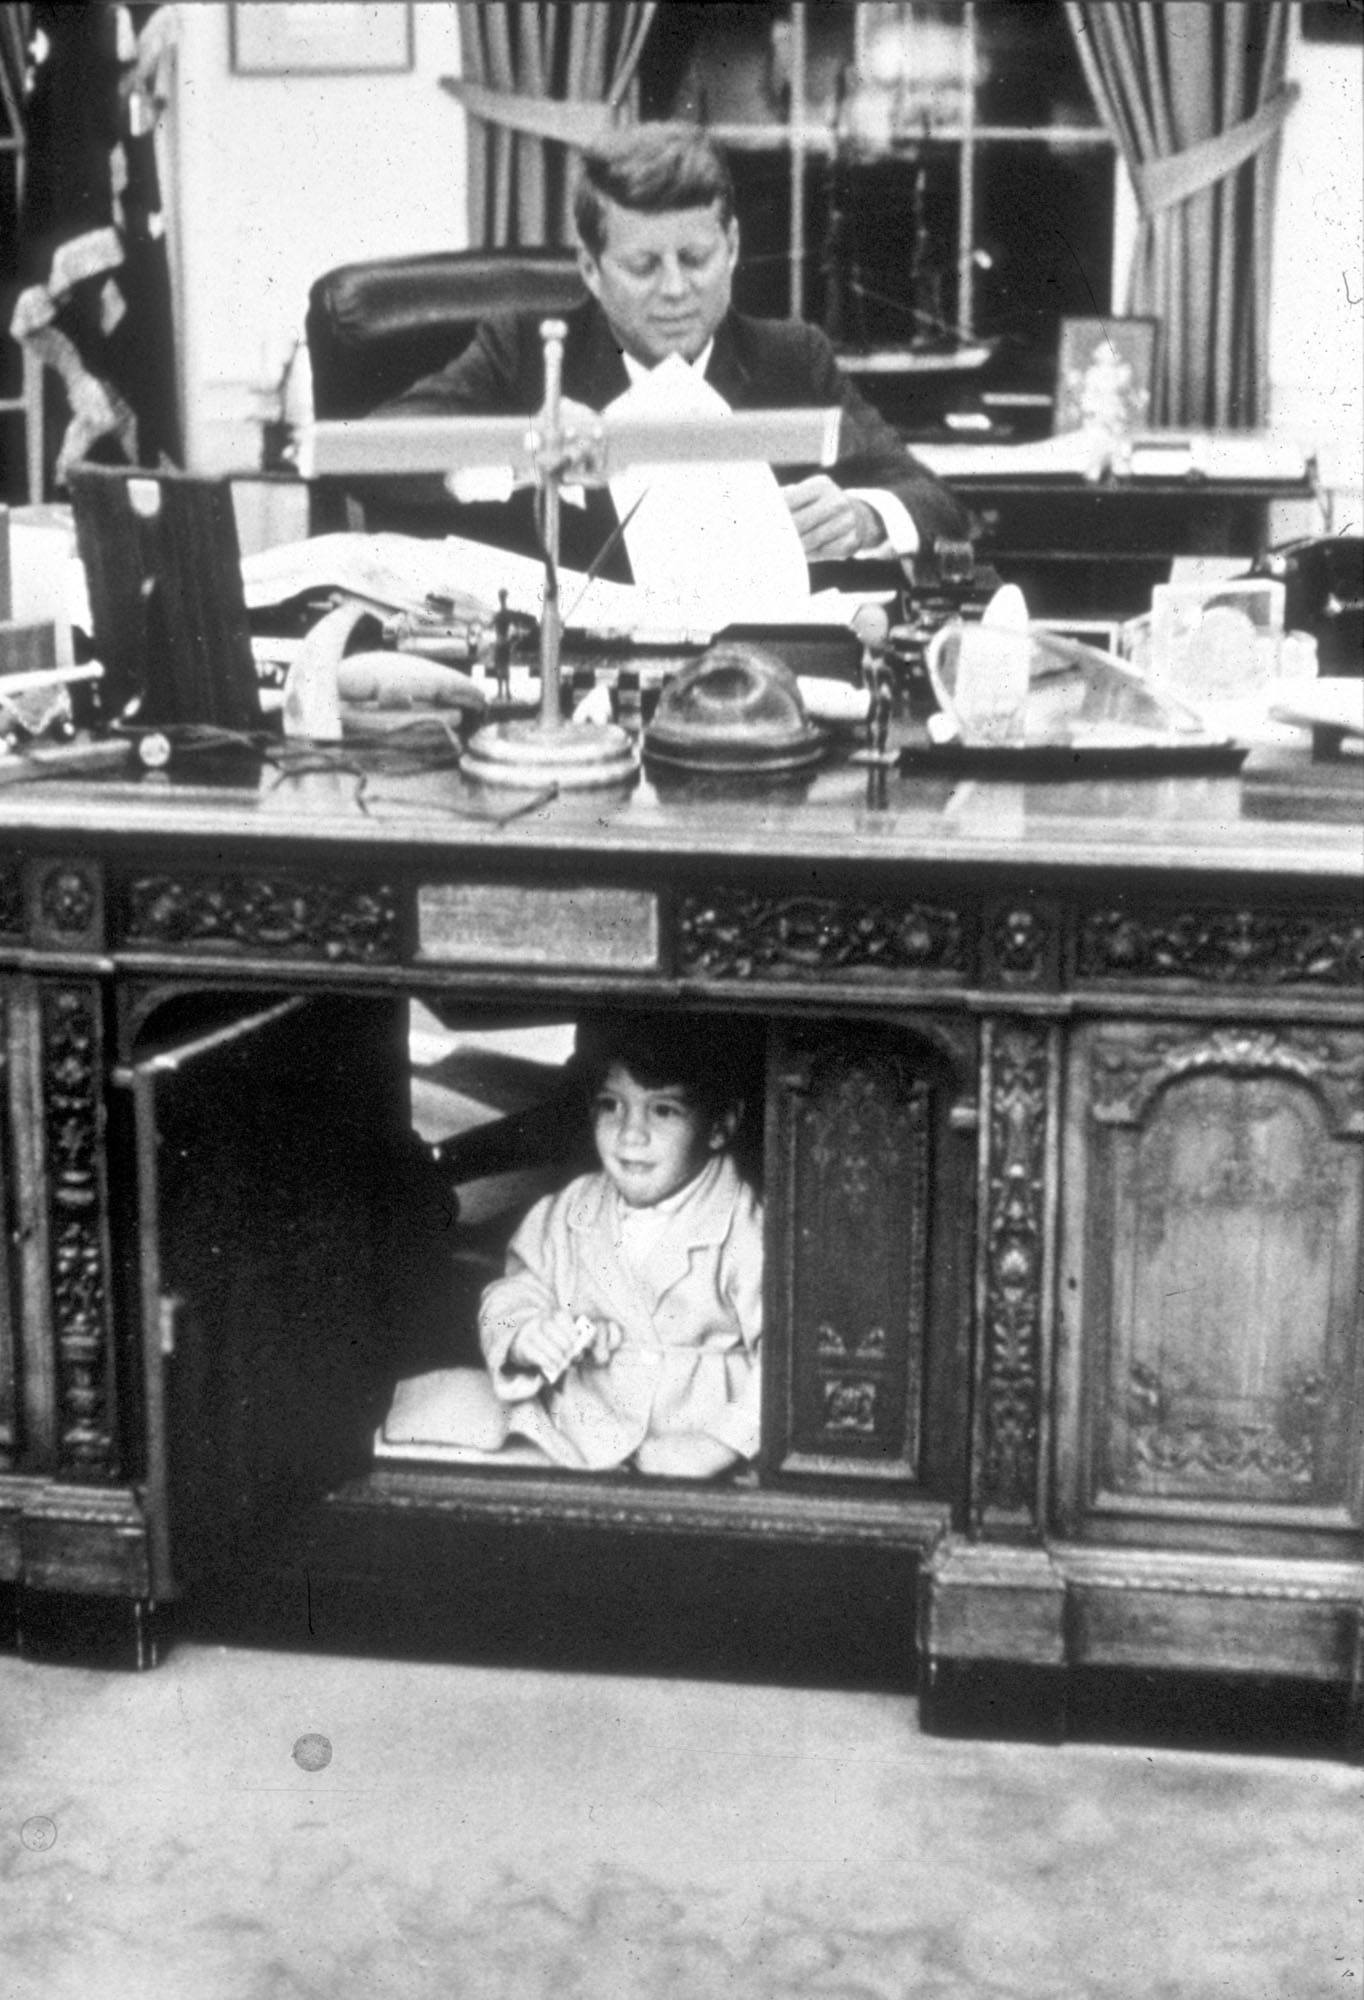 John Kennedy Jr. playing in the Oval Office at the White House